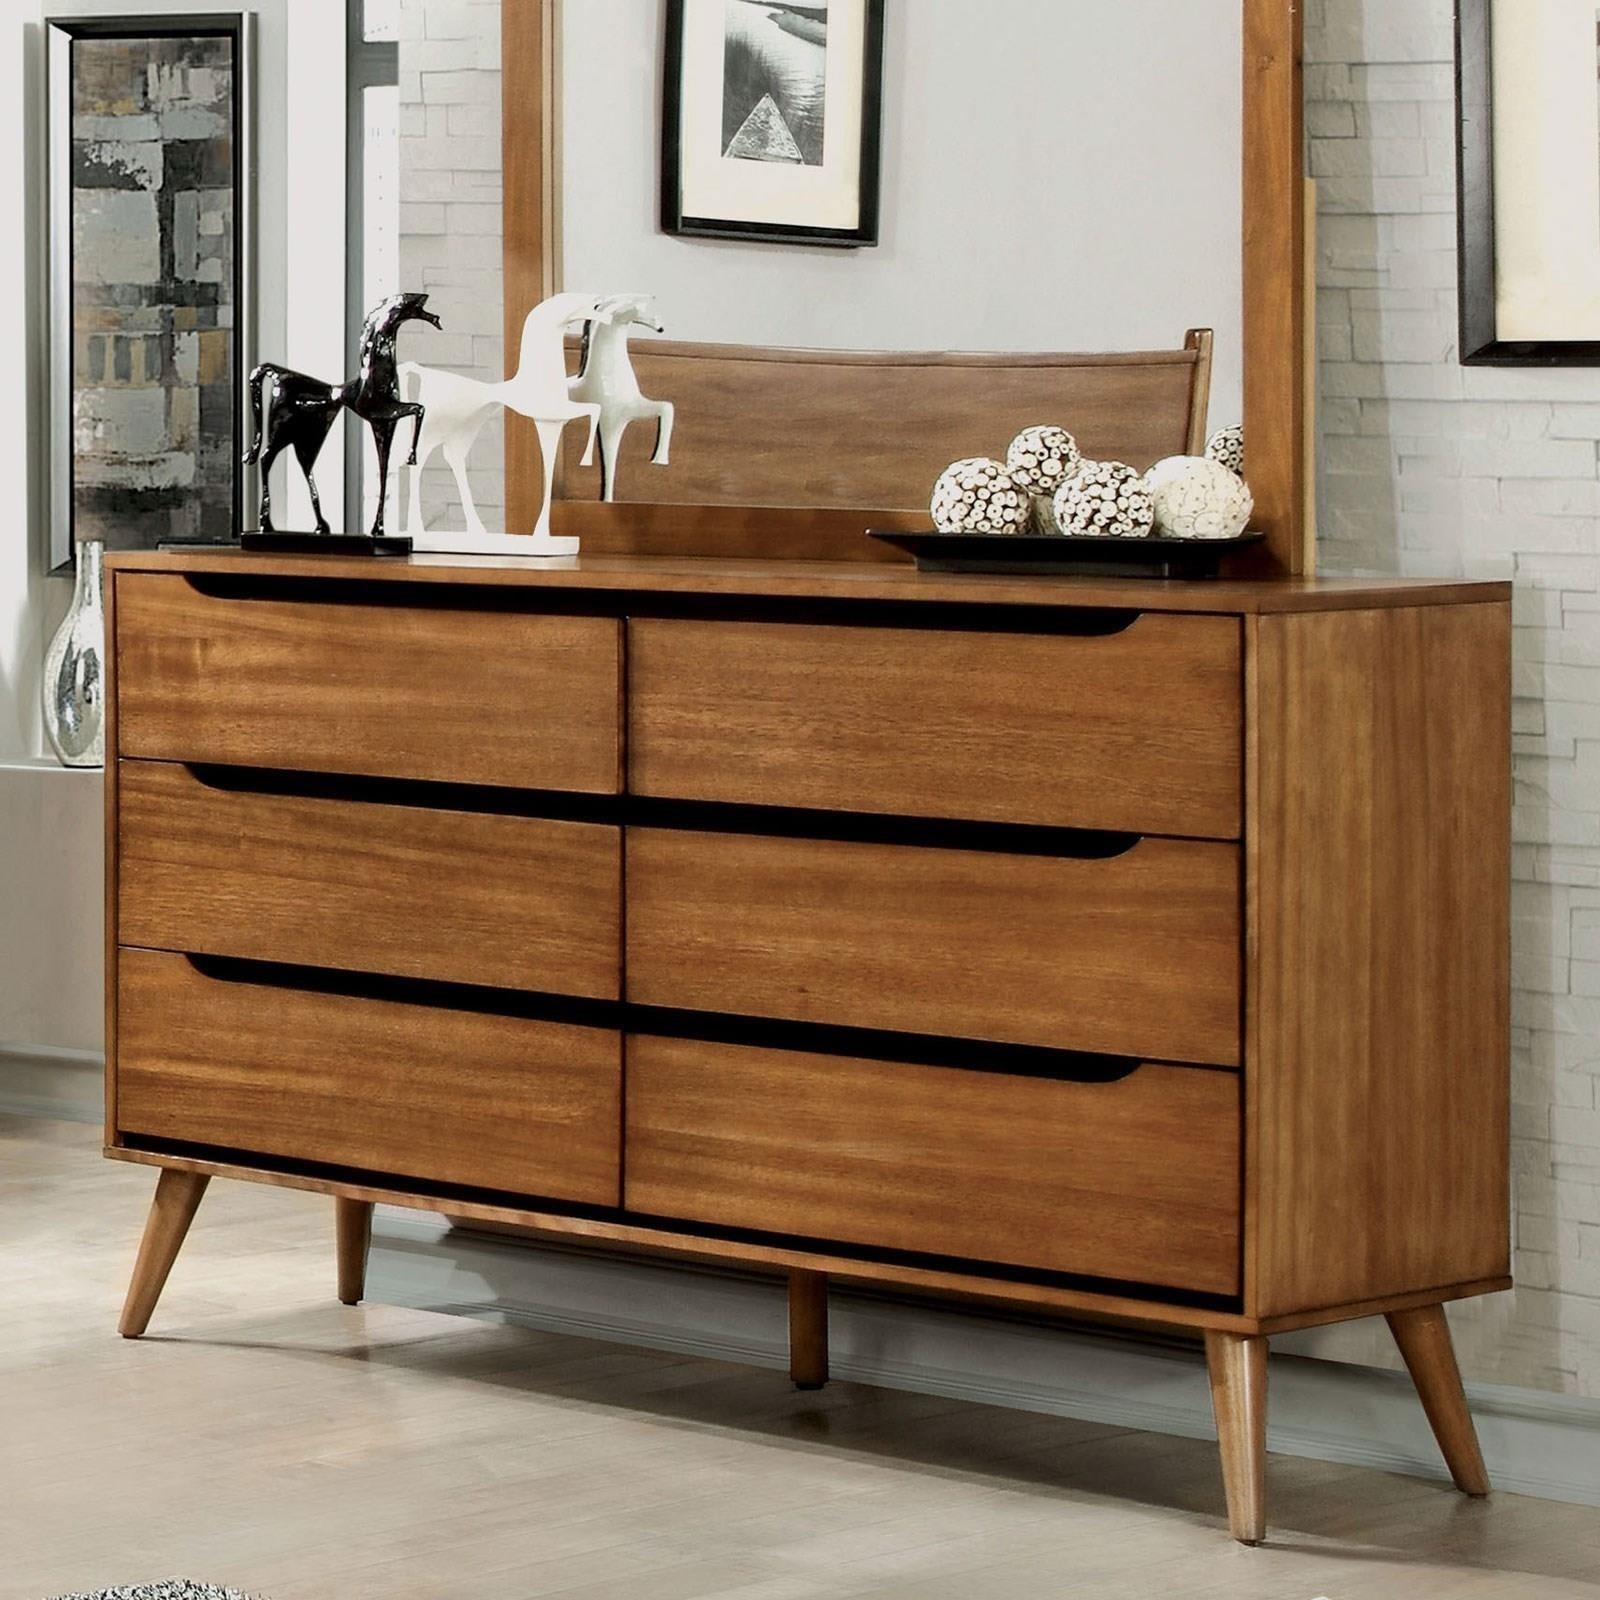 Lennart Dresser by Furniture of America at Dream Home Interiors